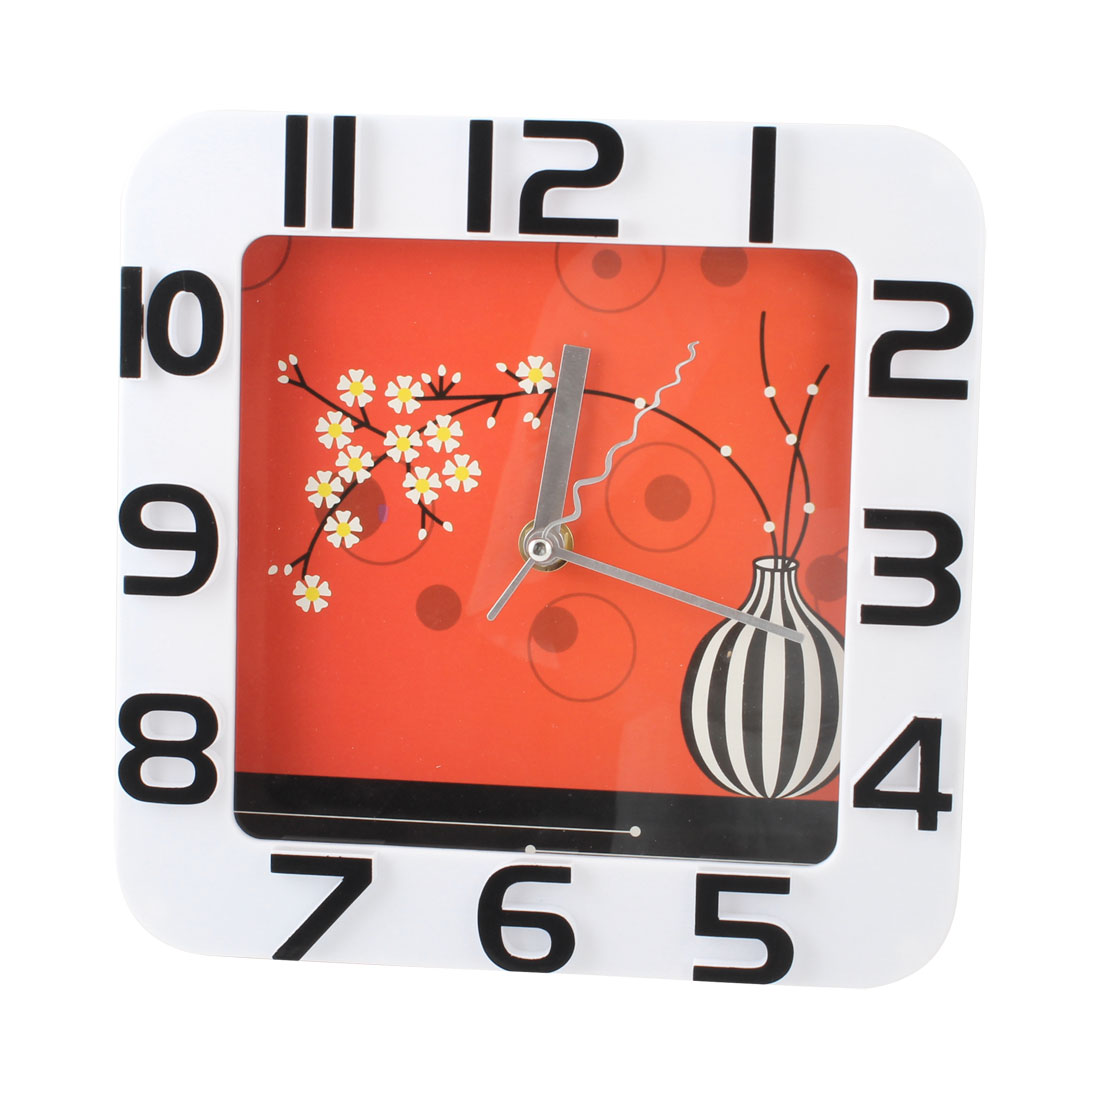 Metal Hands Arabic Numbers Display Wall Mounted Clock Red White